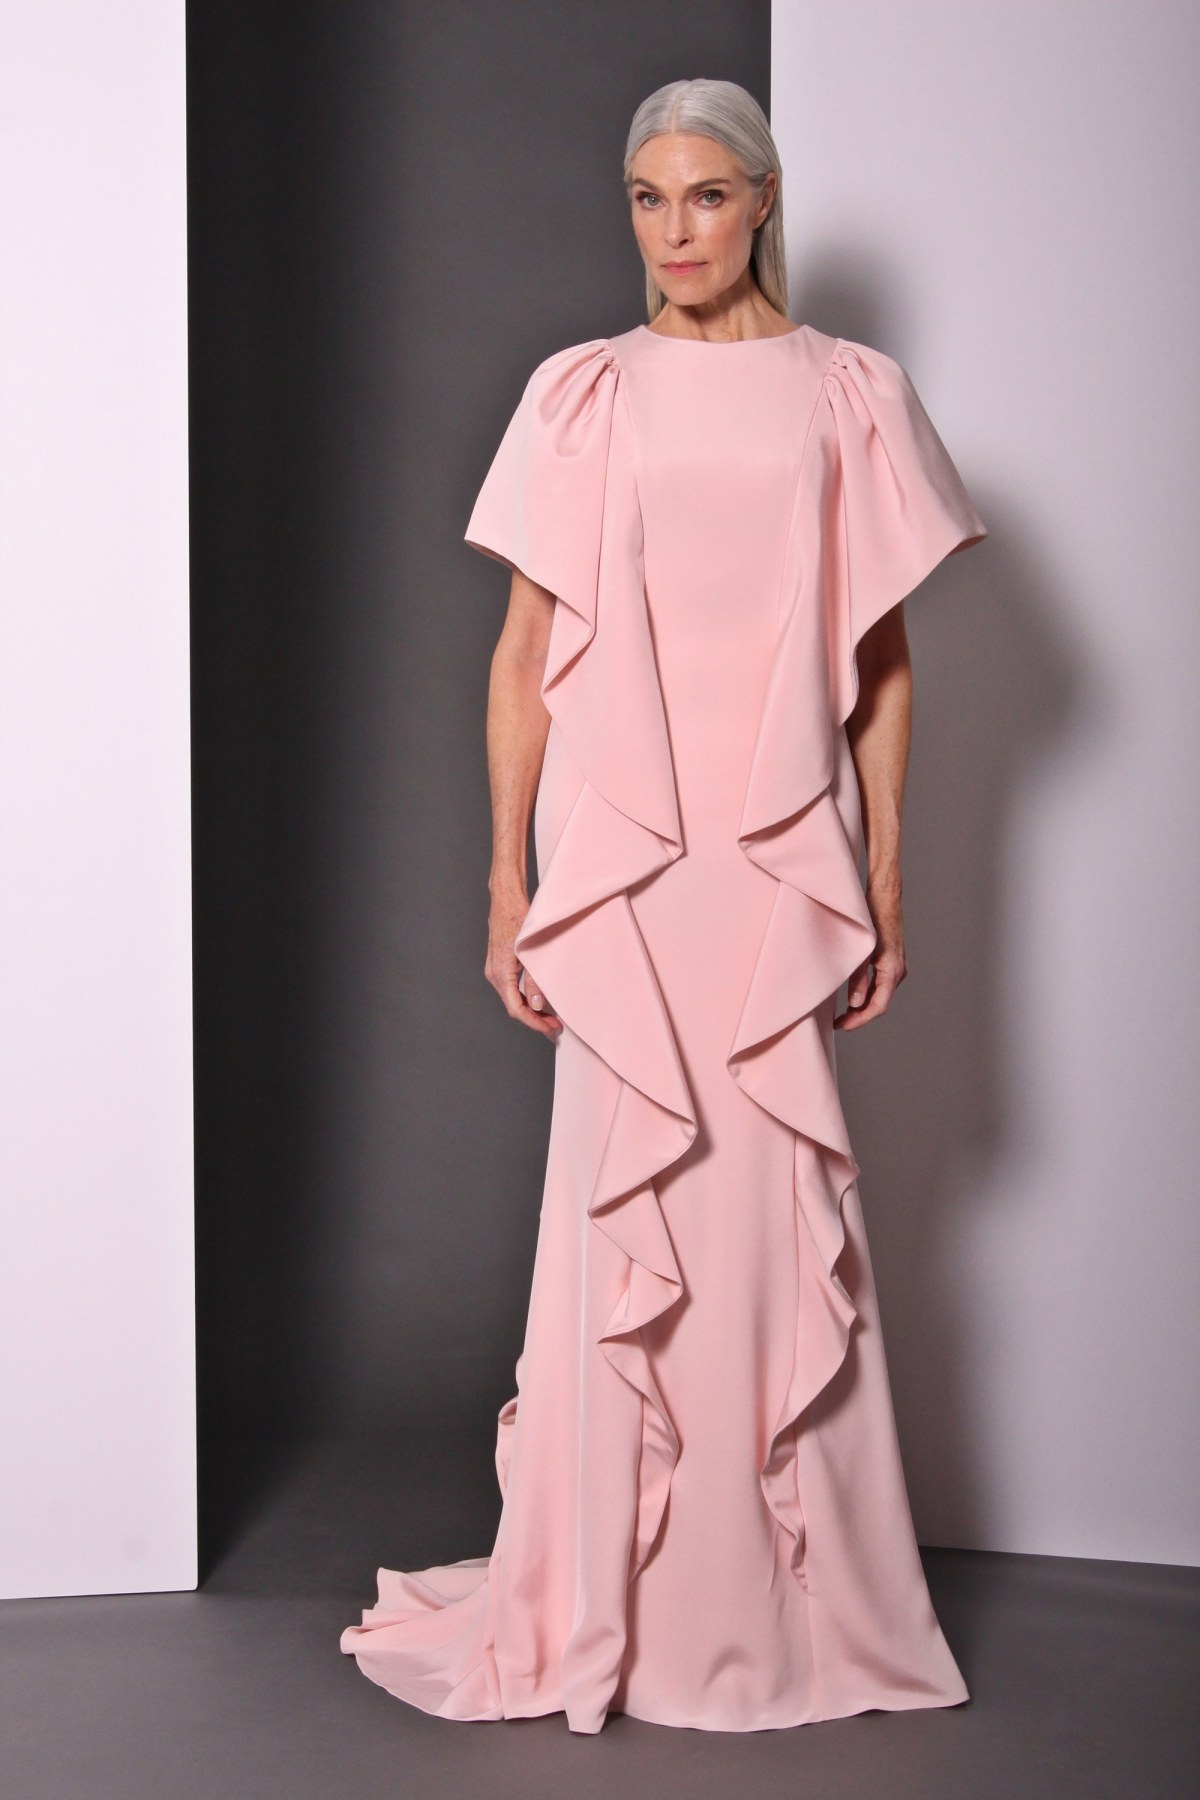 christian-siriano-pre-fall-2017-fashion-show-the-impression-33